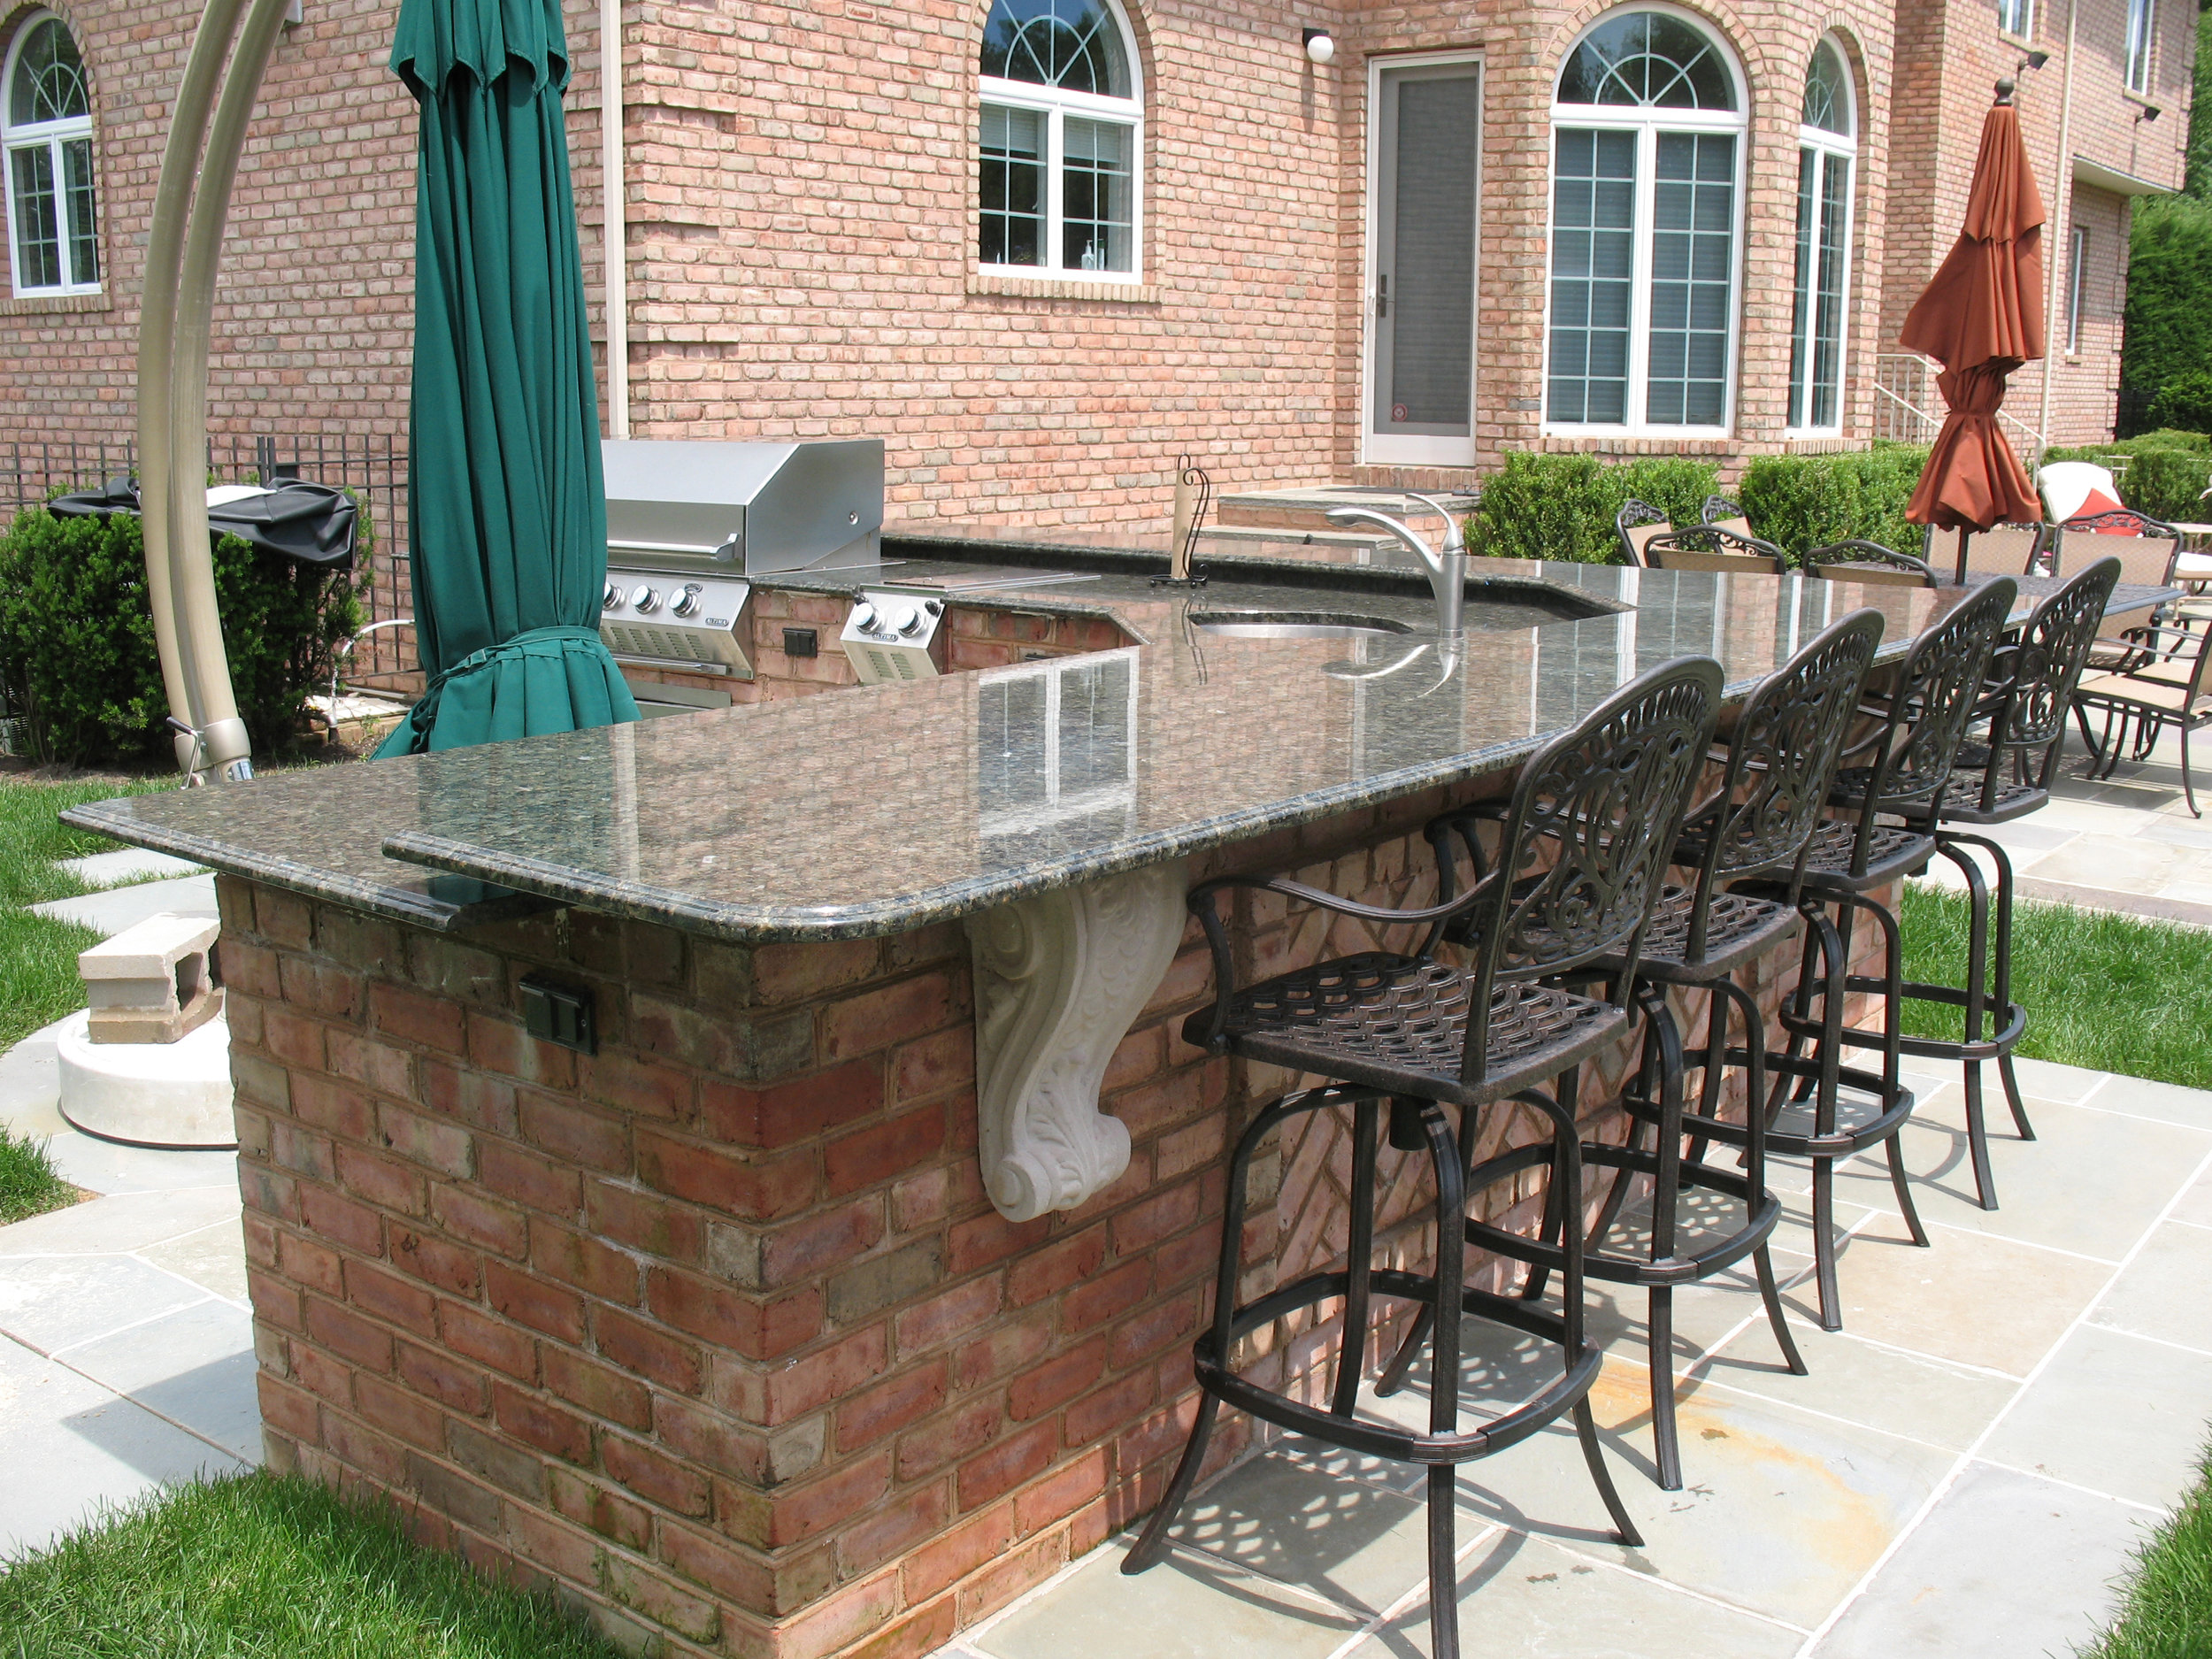 Top outdoor kitchen patio design in Long Island, NY